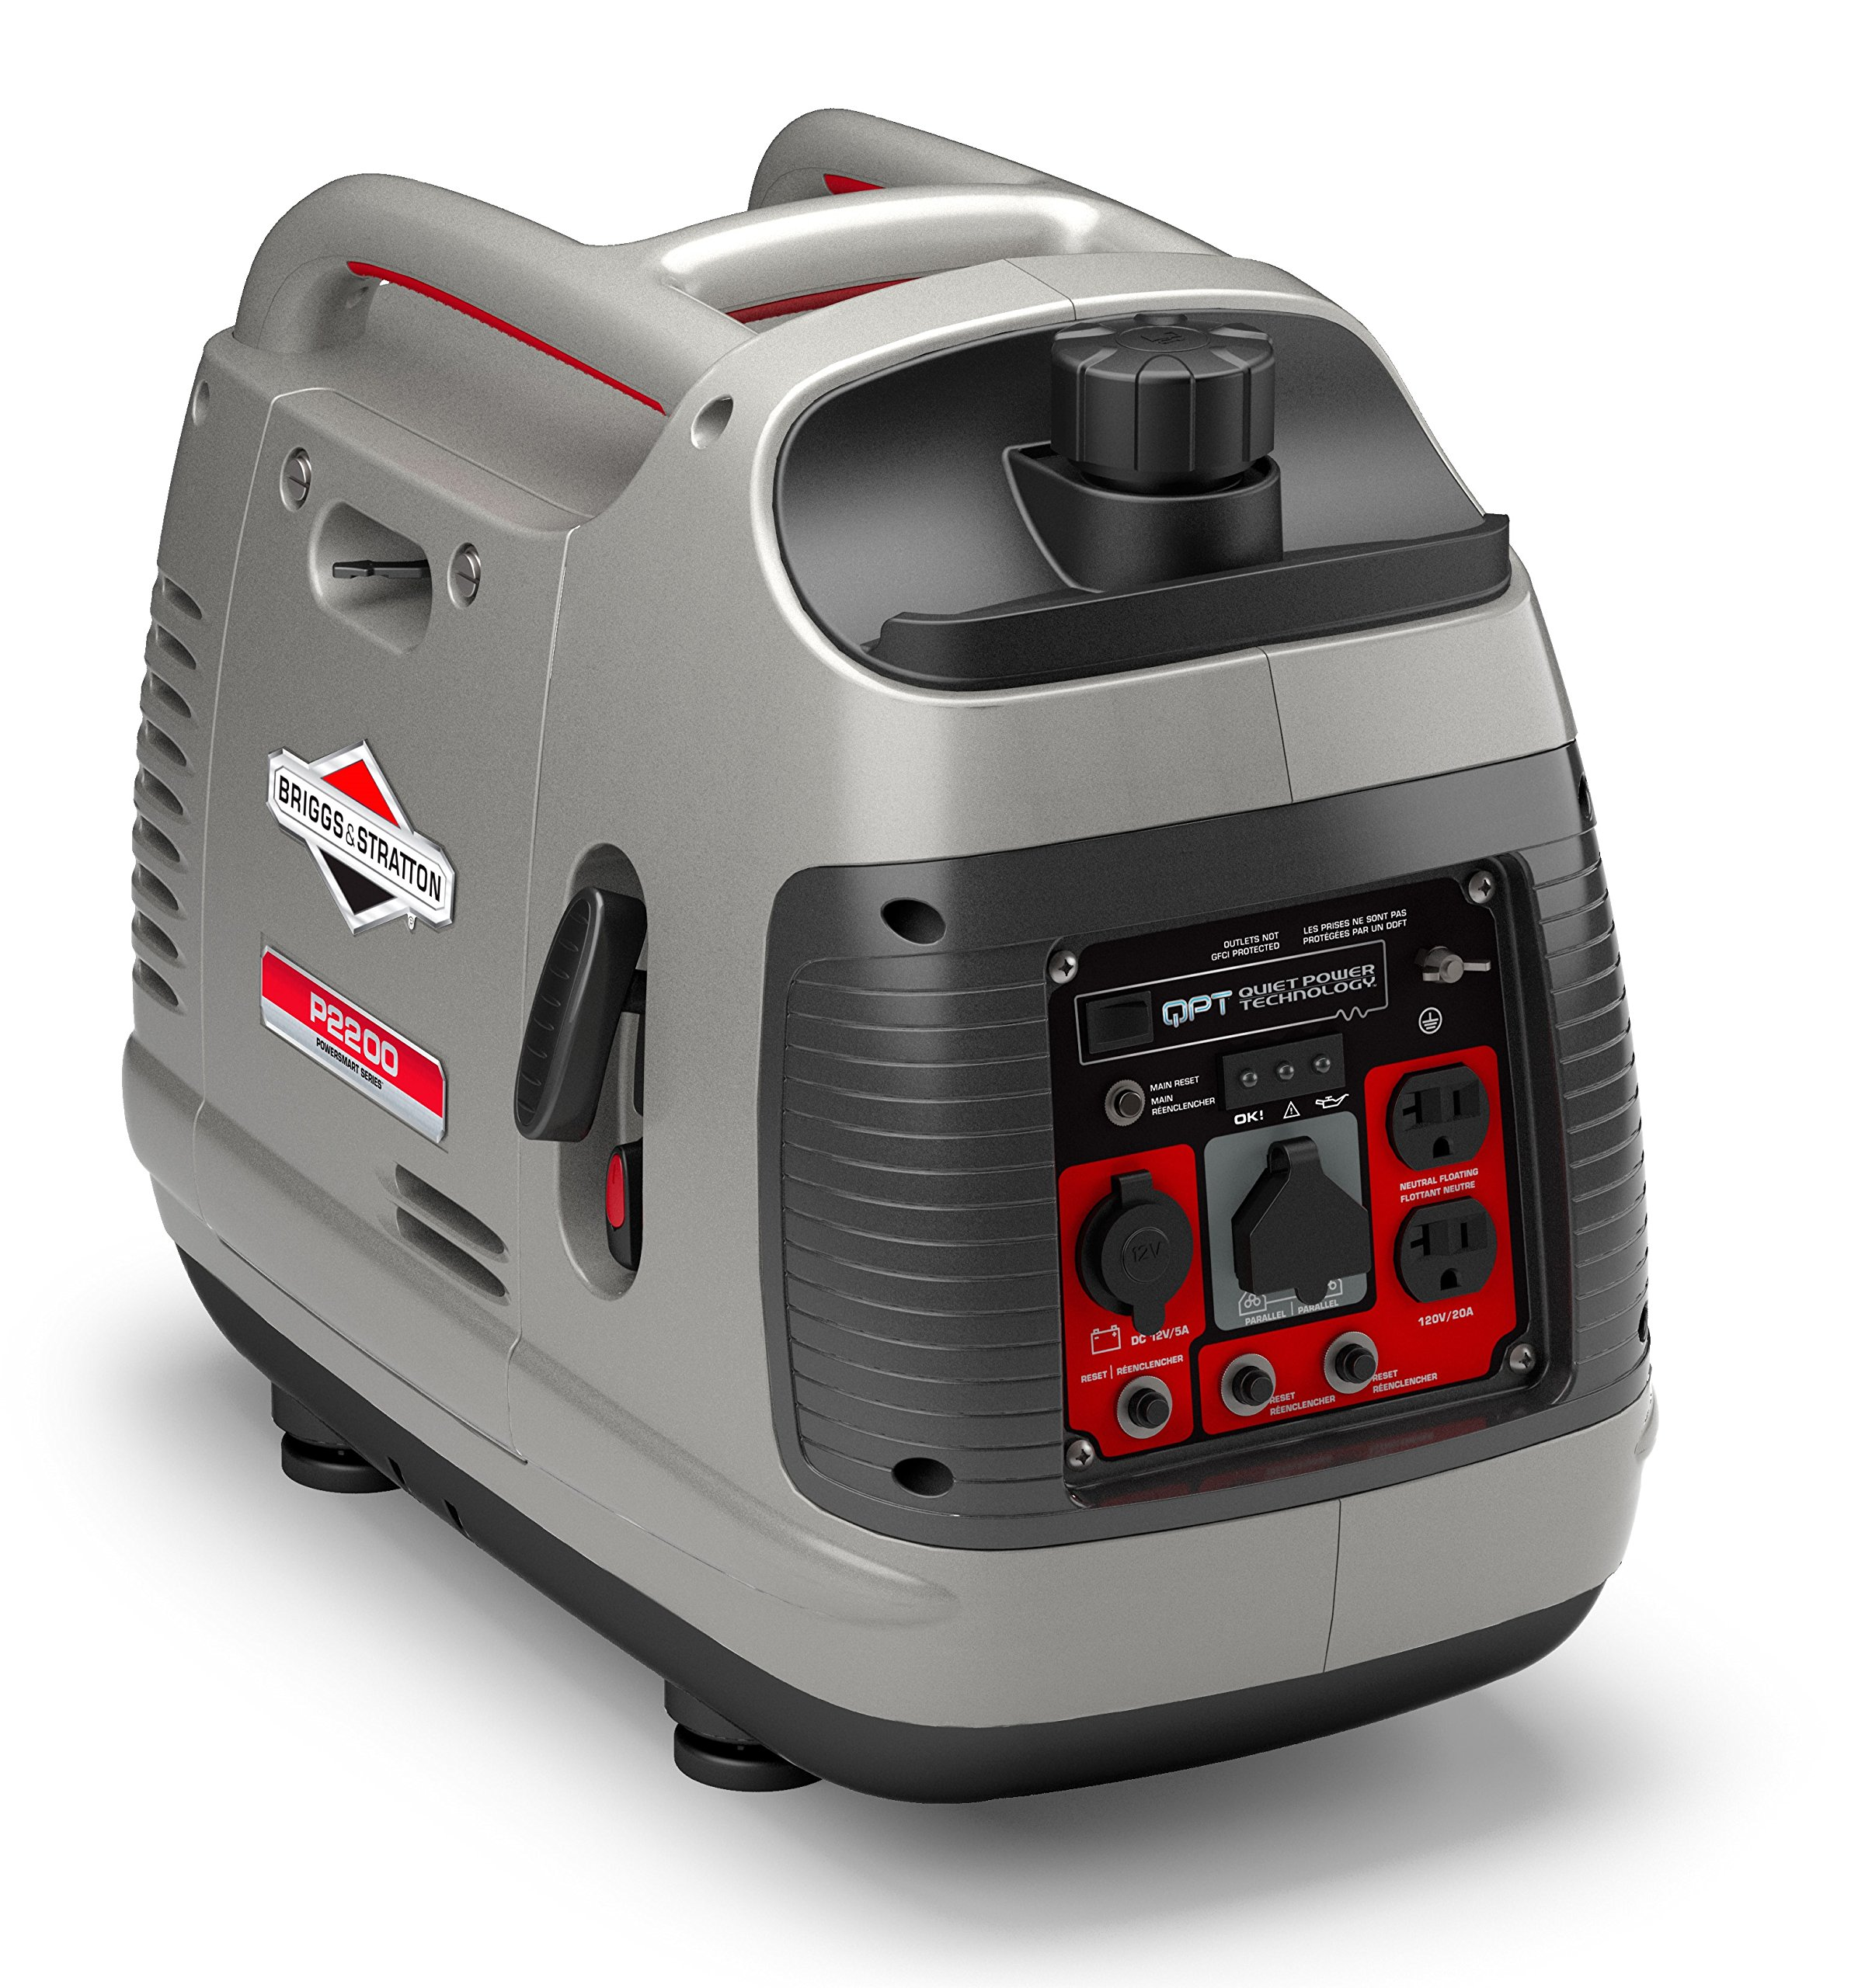 Briggs & Stratton P2200 Power Smart Series Inverter Generator With Quiet Power Technology And Parallel